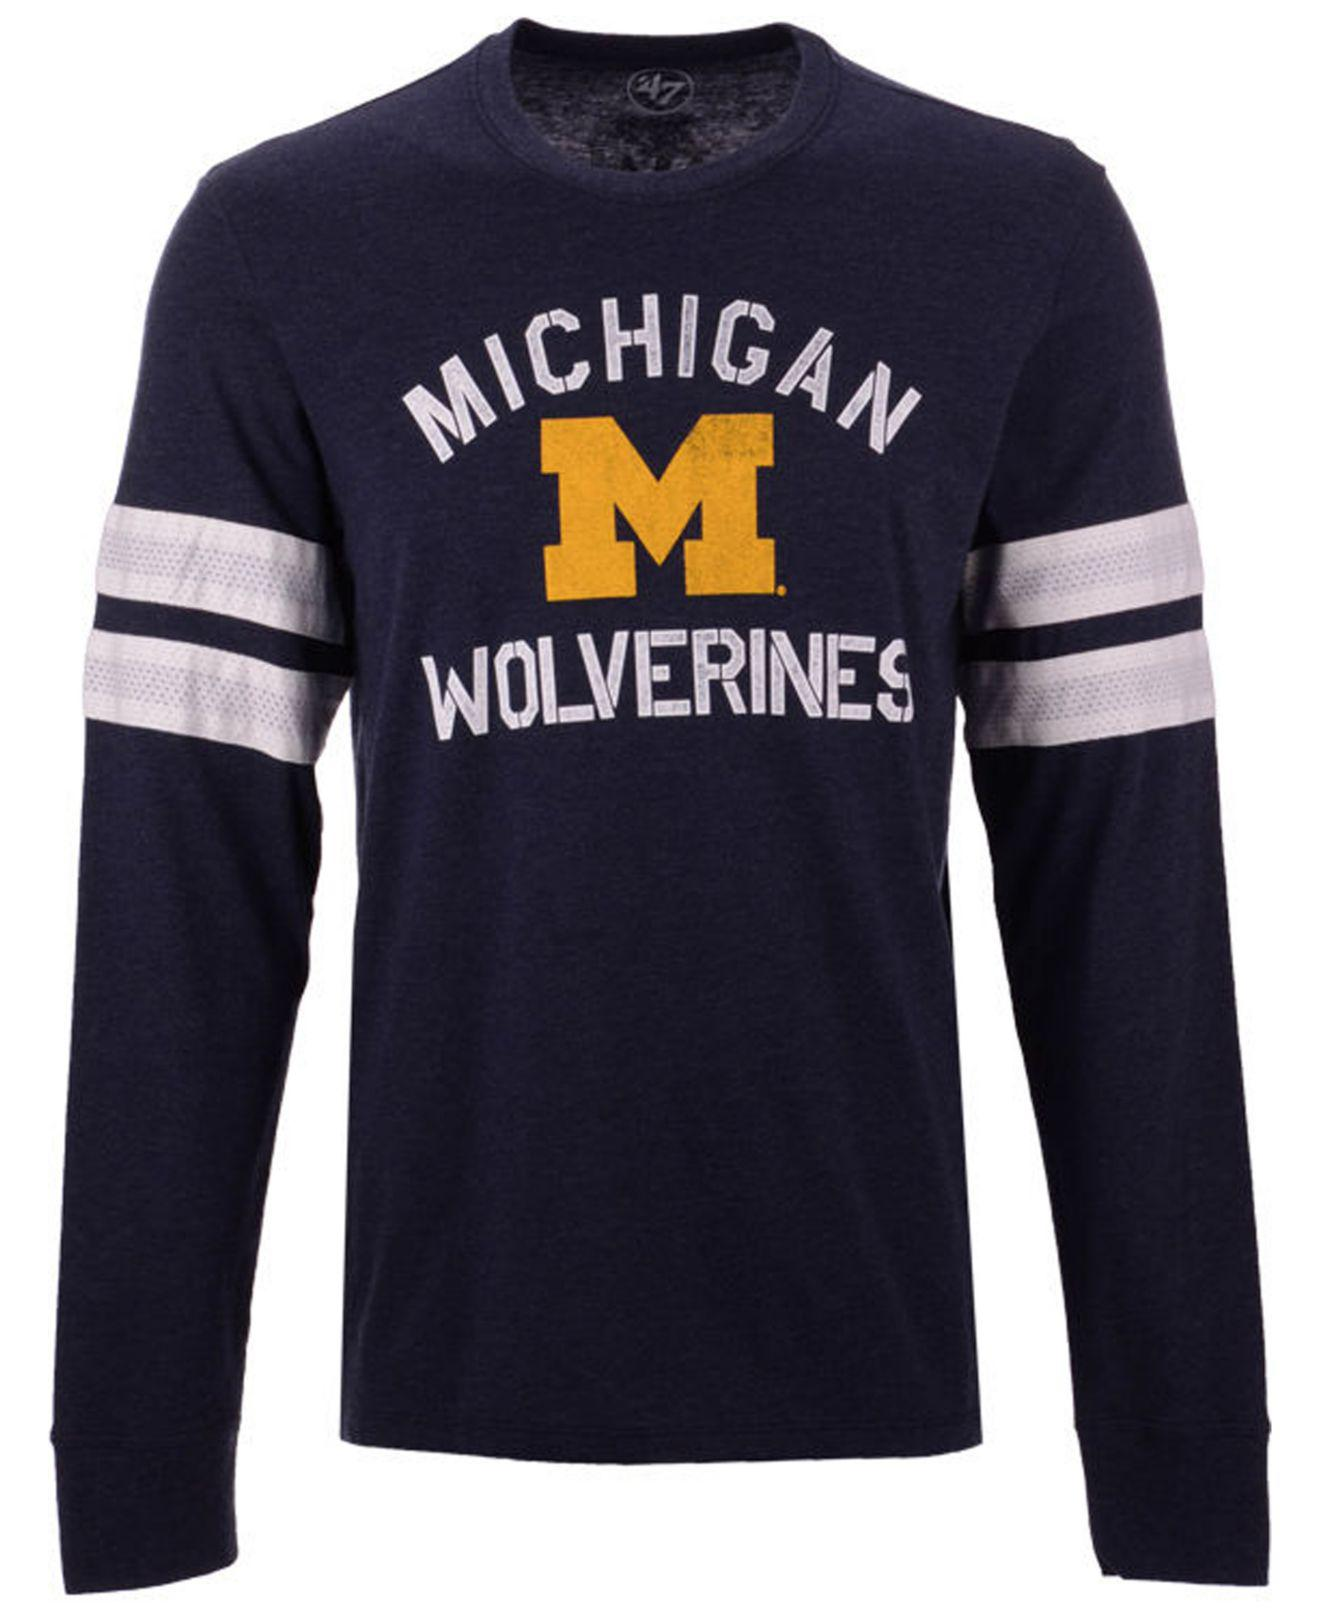 a05eaee0 Lyst - 47 Brand Michigan Wolverines Long Sleeve Scramble T-shirt in ...